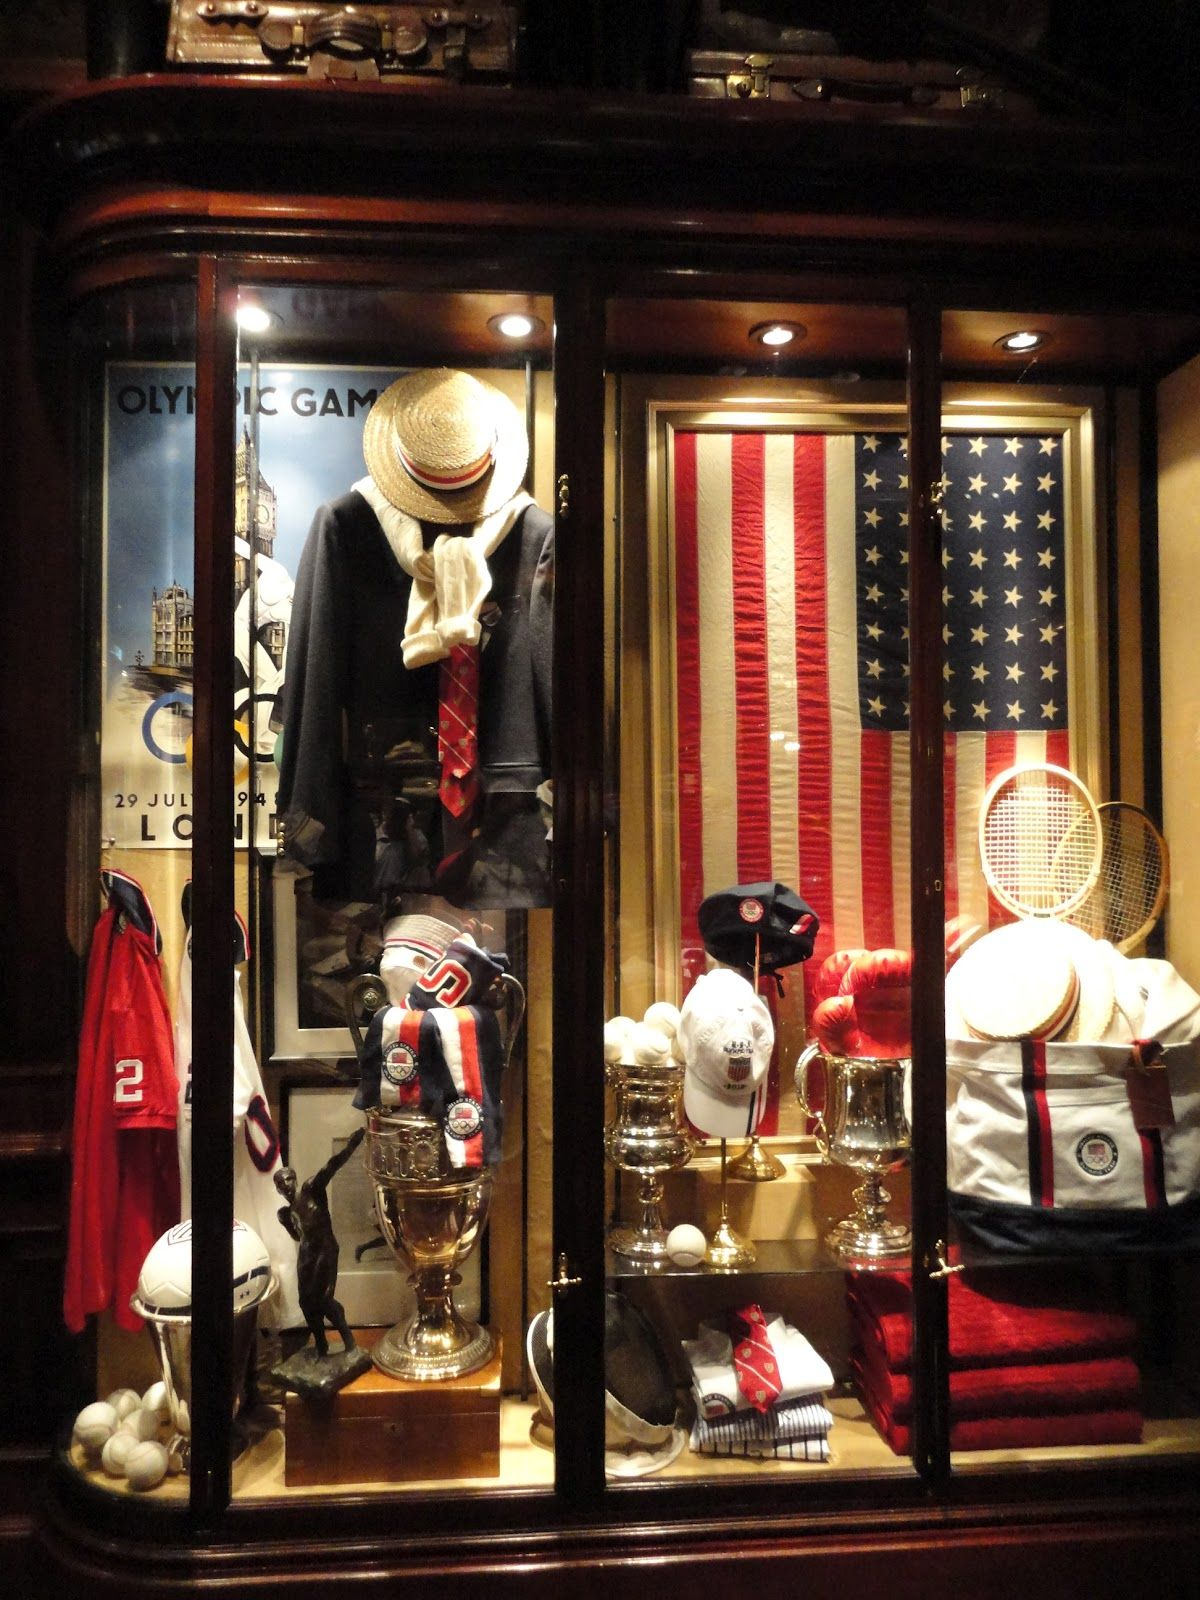 4d2cfa548 London Olympics 2012 display in the Ralph Lauren store in Chicago. The  problem  The American flag is backwards. Ouch.